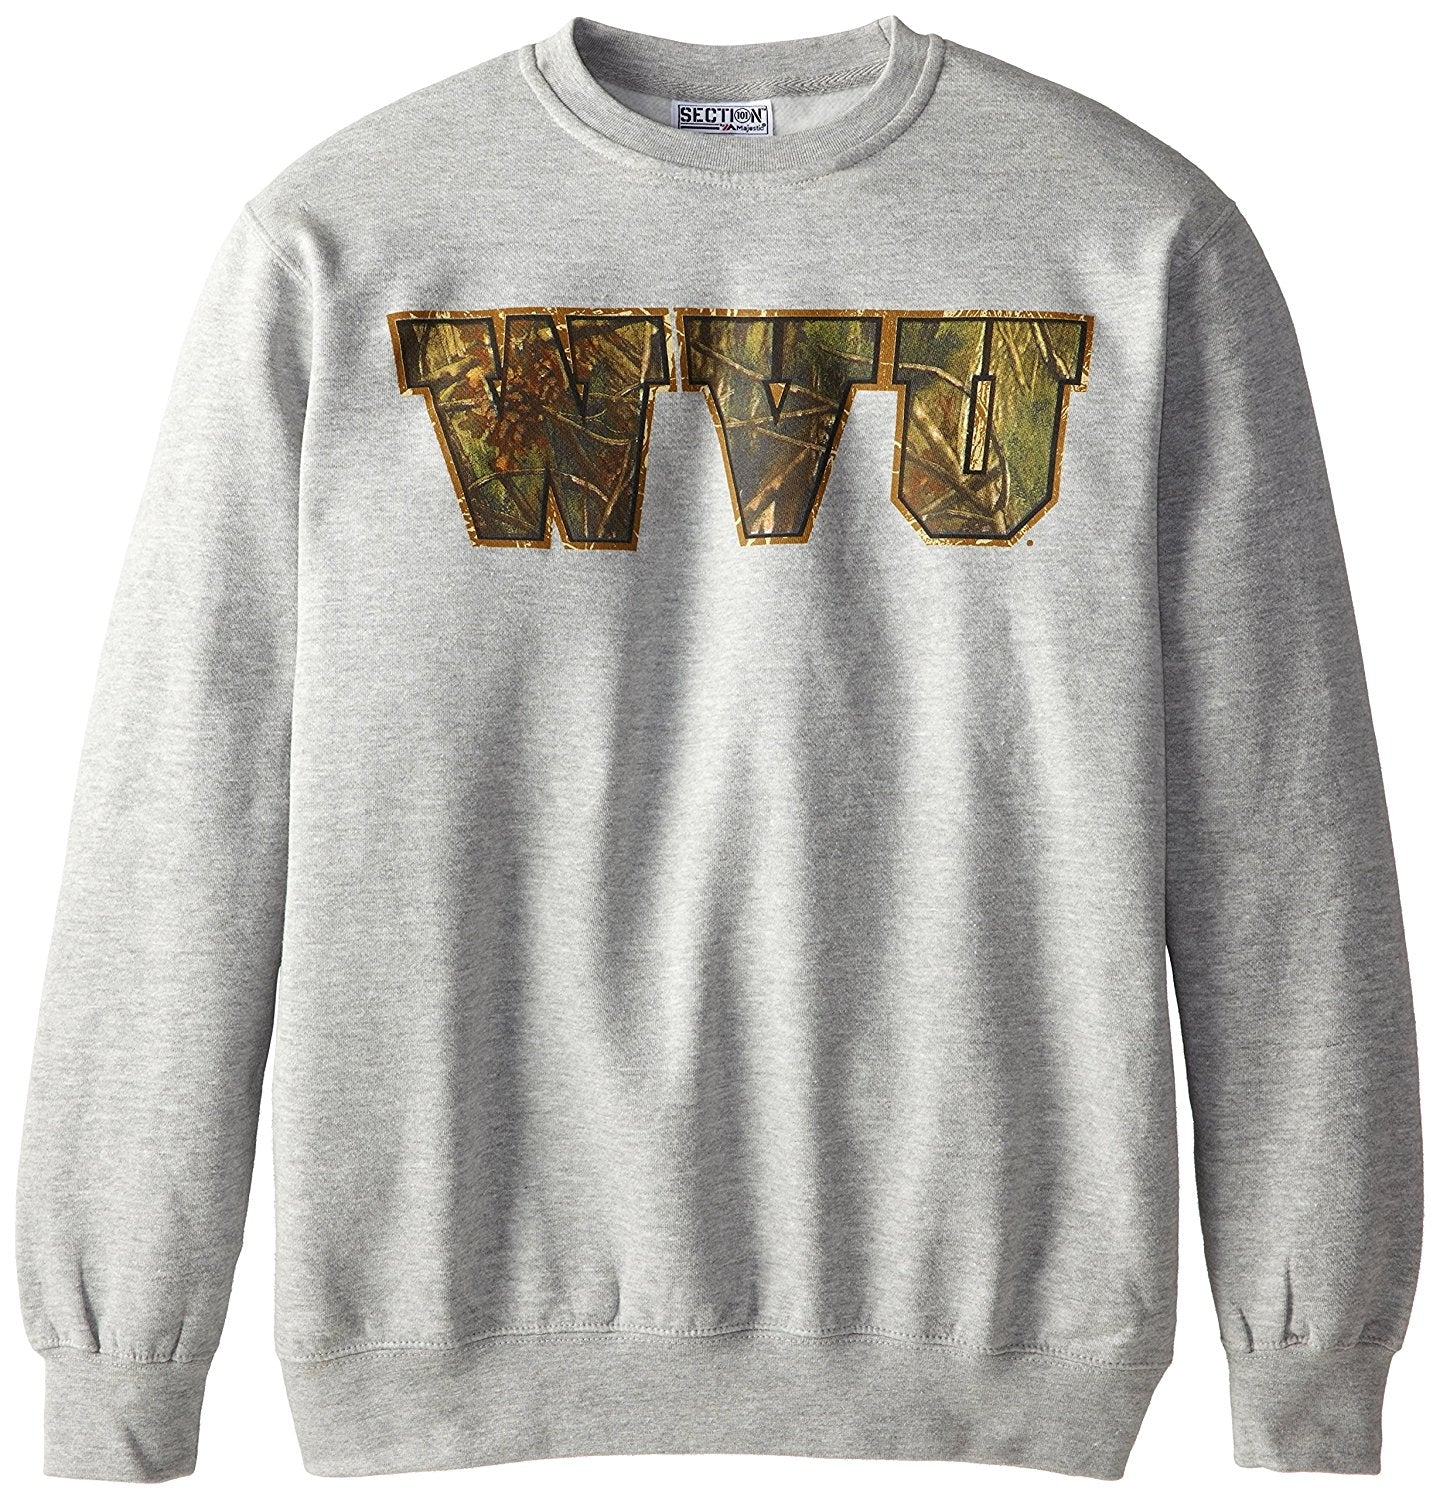 NCAA West Virginia University College Long Sleeve Crew Neck Fleece Sweatshirt